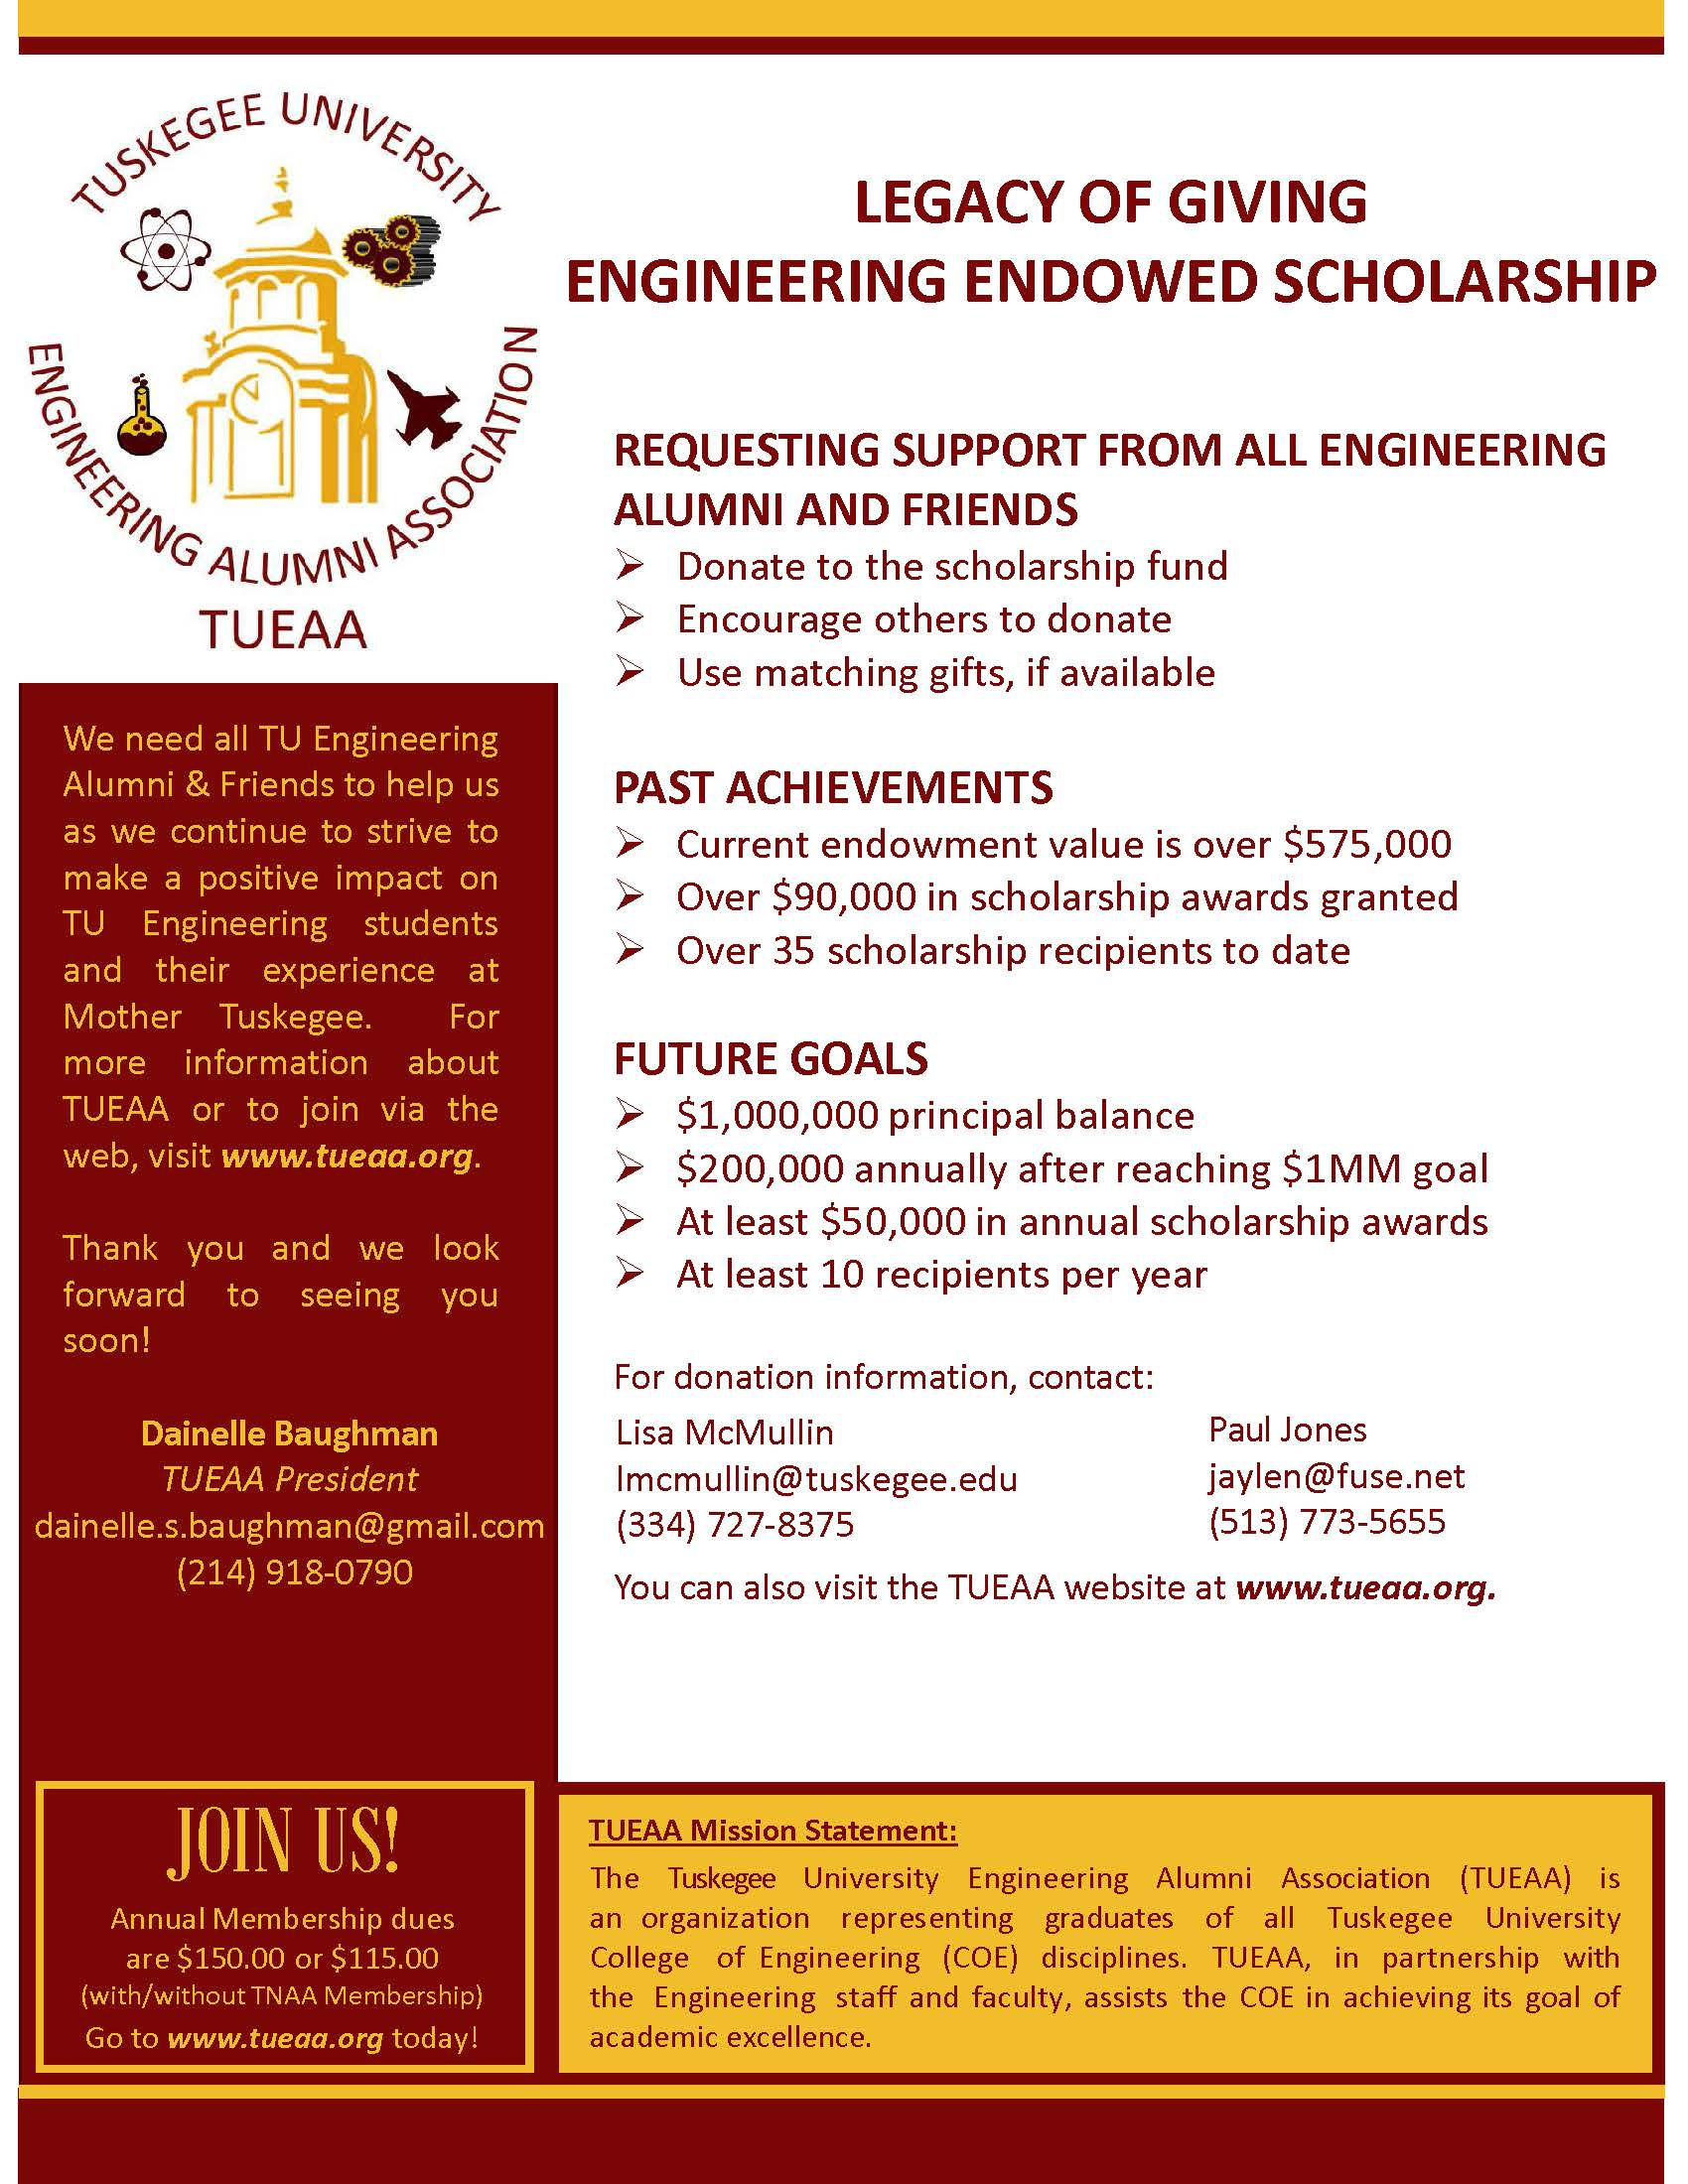 TUEAA Endowed Scholarship